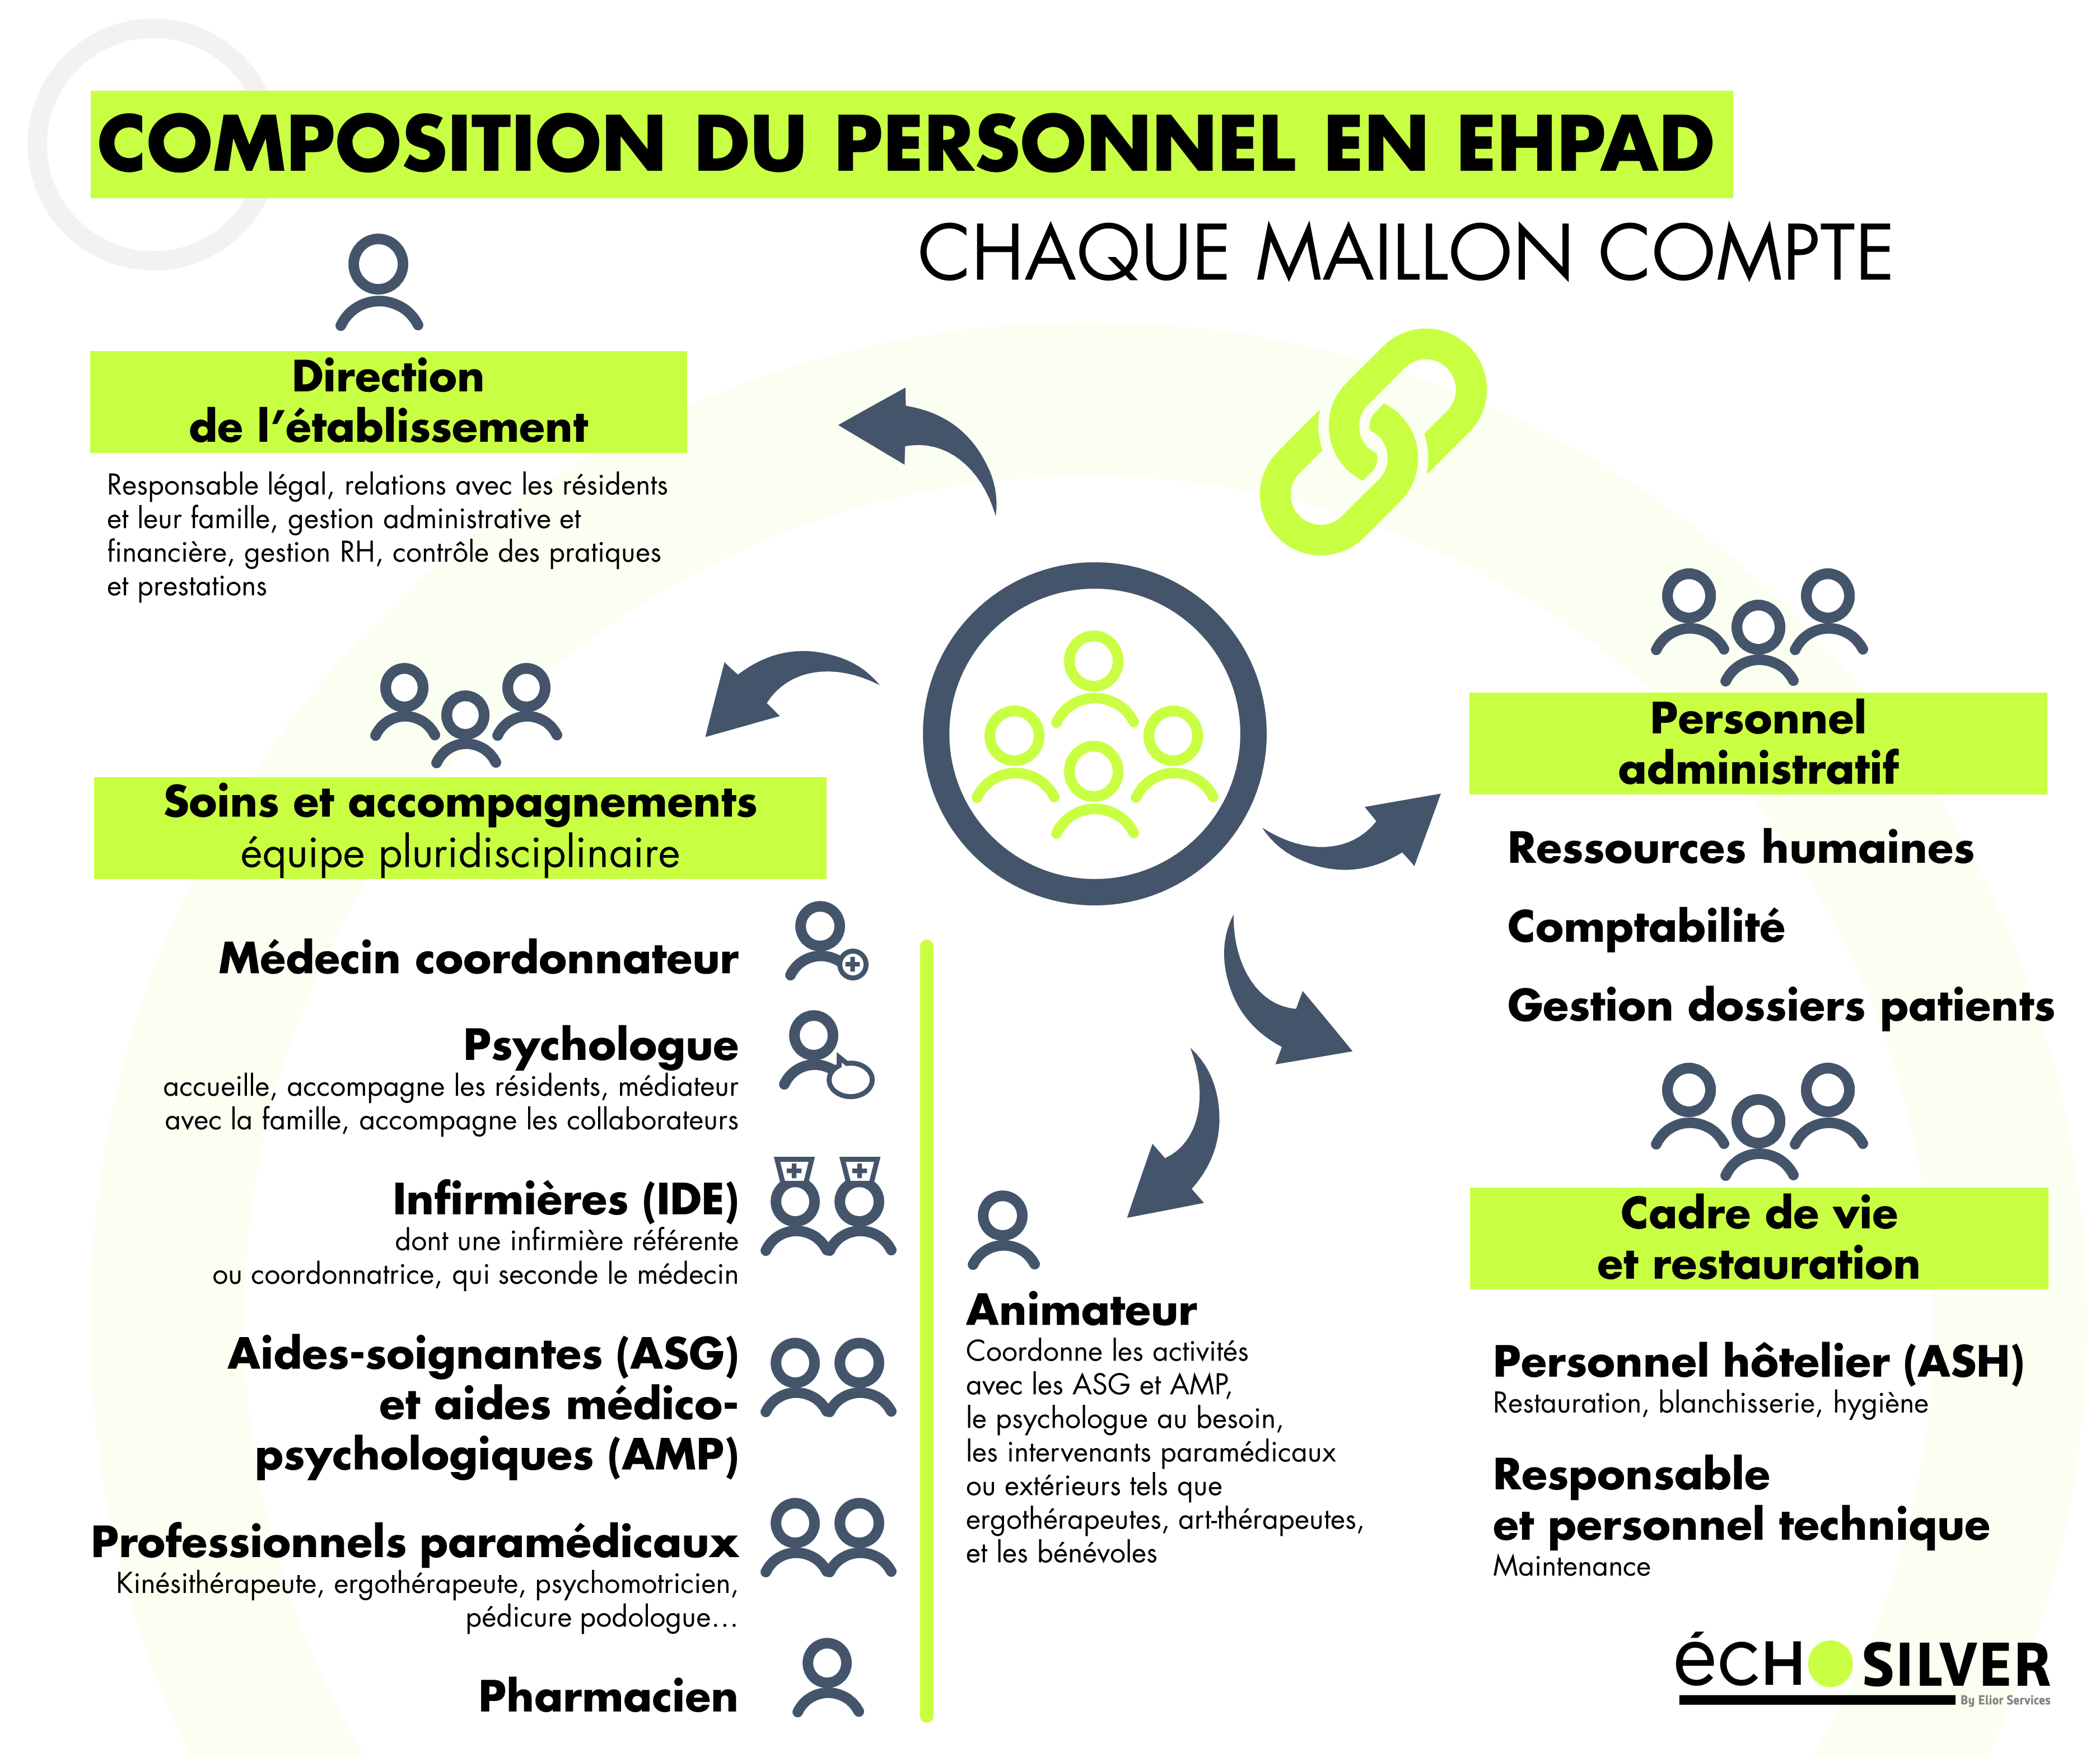 EHPAD personnel composition